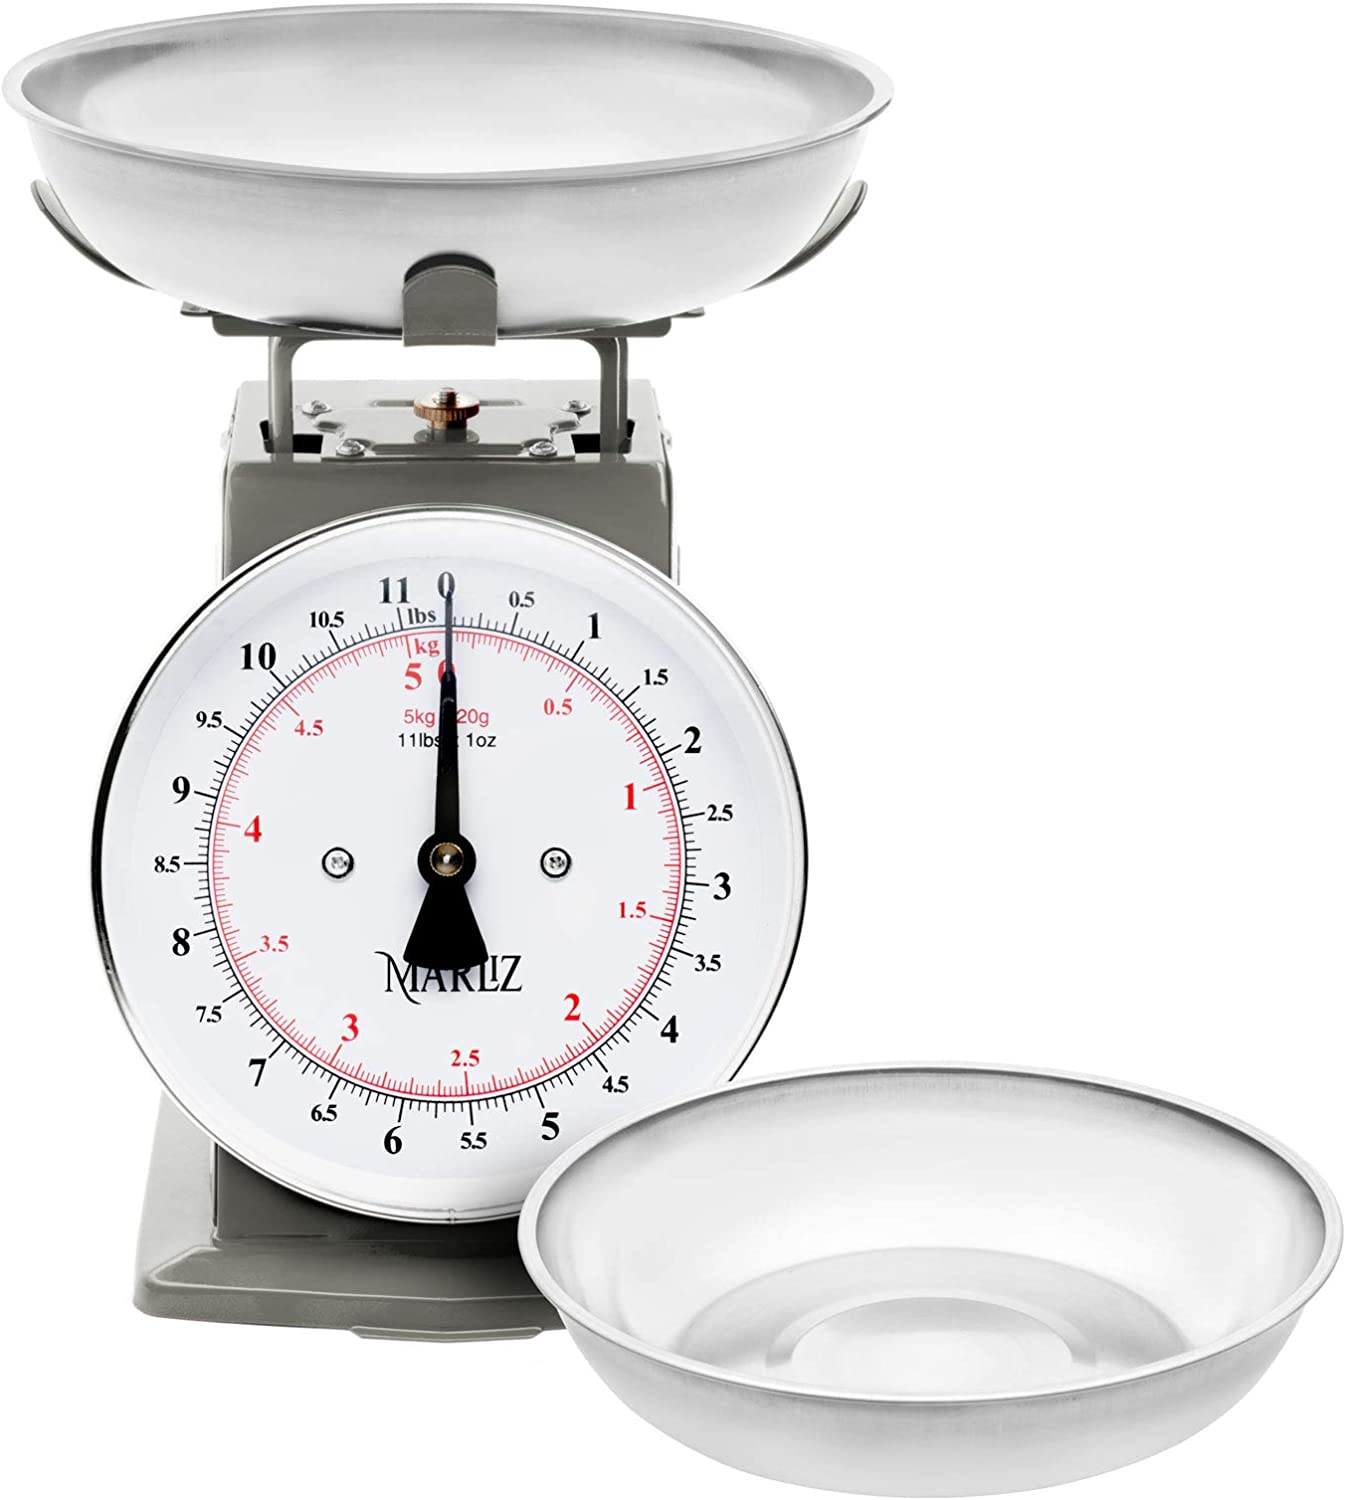 MARLIZ 11 lb/ 5Kg old antique style mechanical kitchen scale with 2 bowls |food scale for kitchen| analog kitchen scale Kilogram/pounds| analog food weight scales |meat scale grey